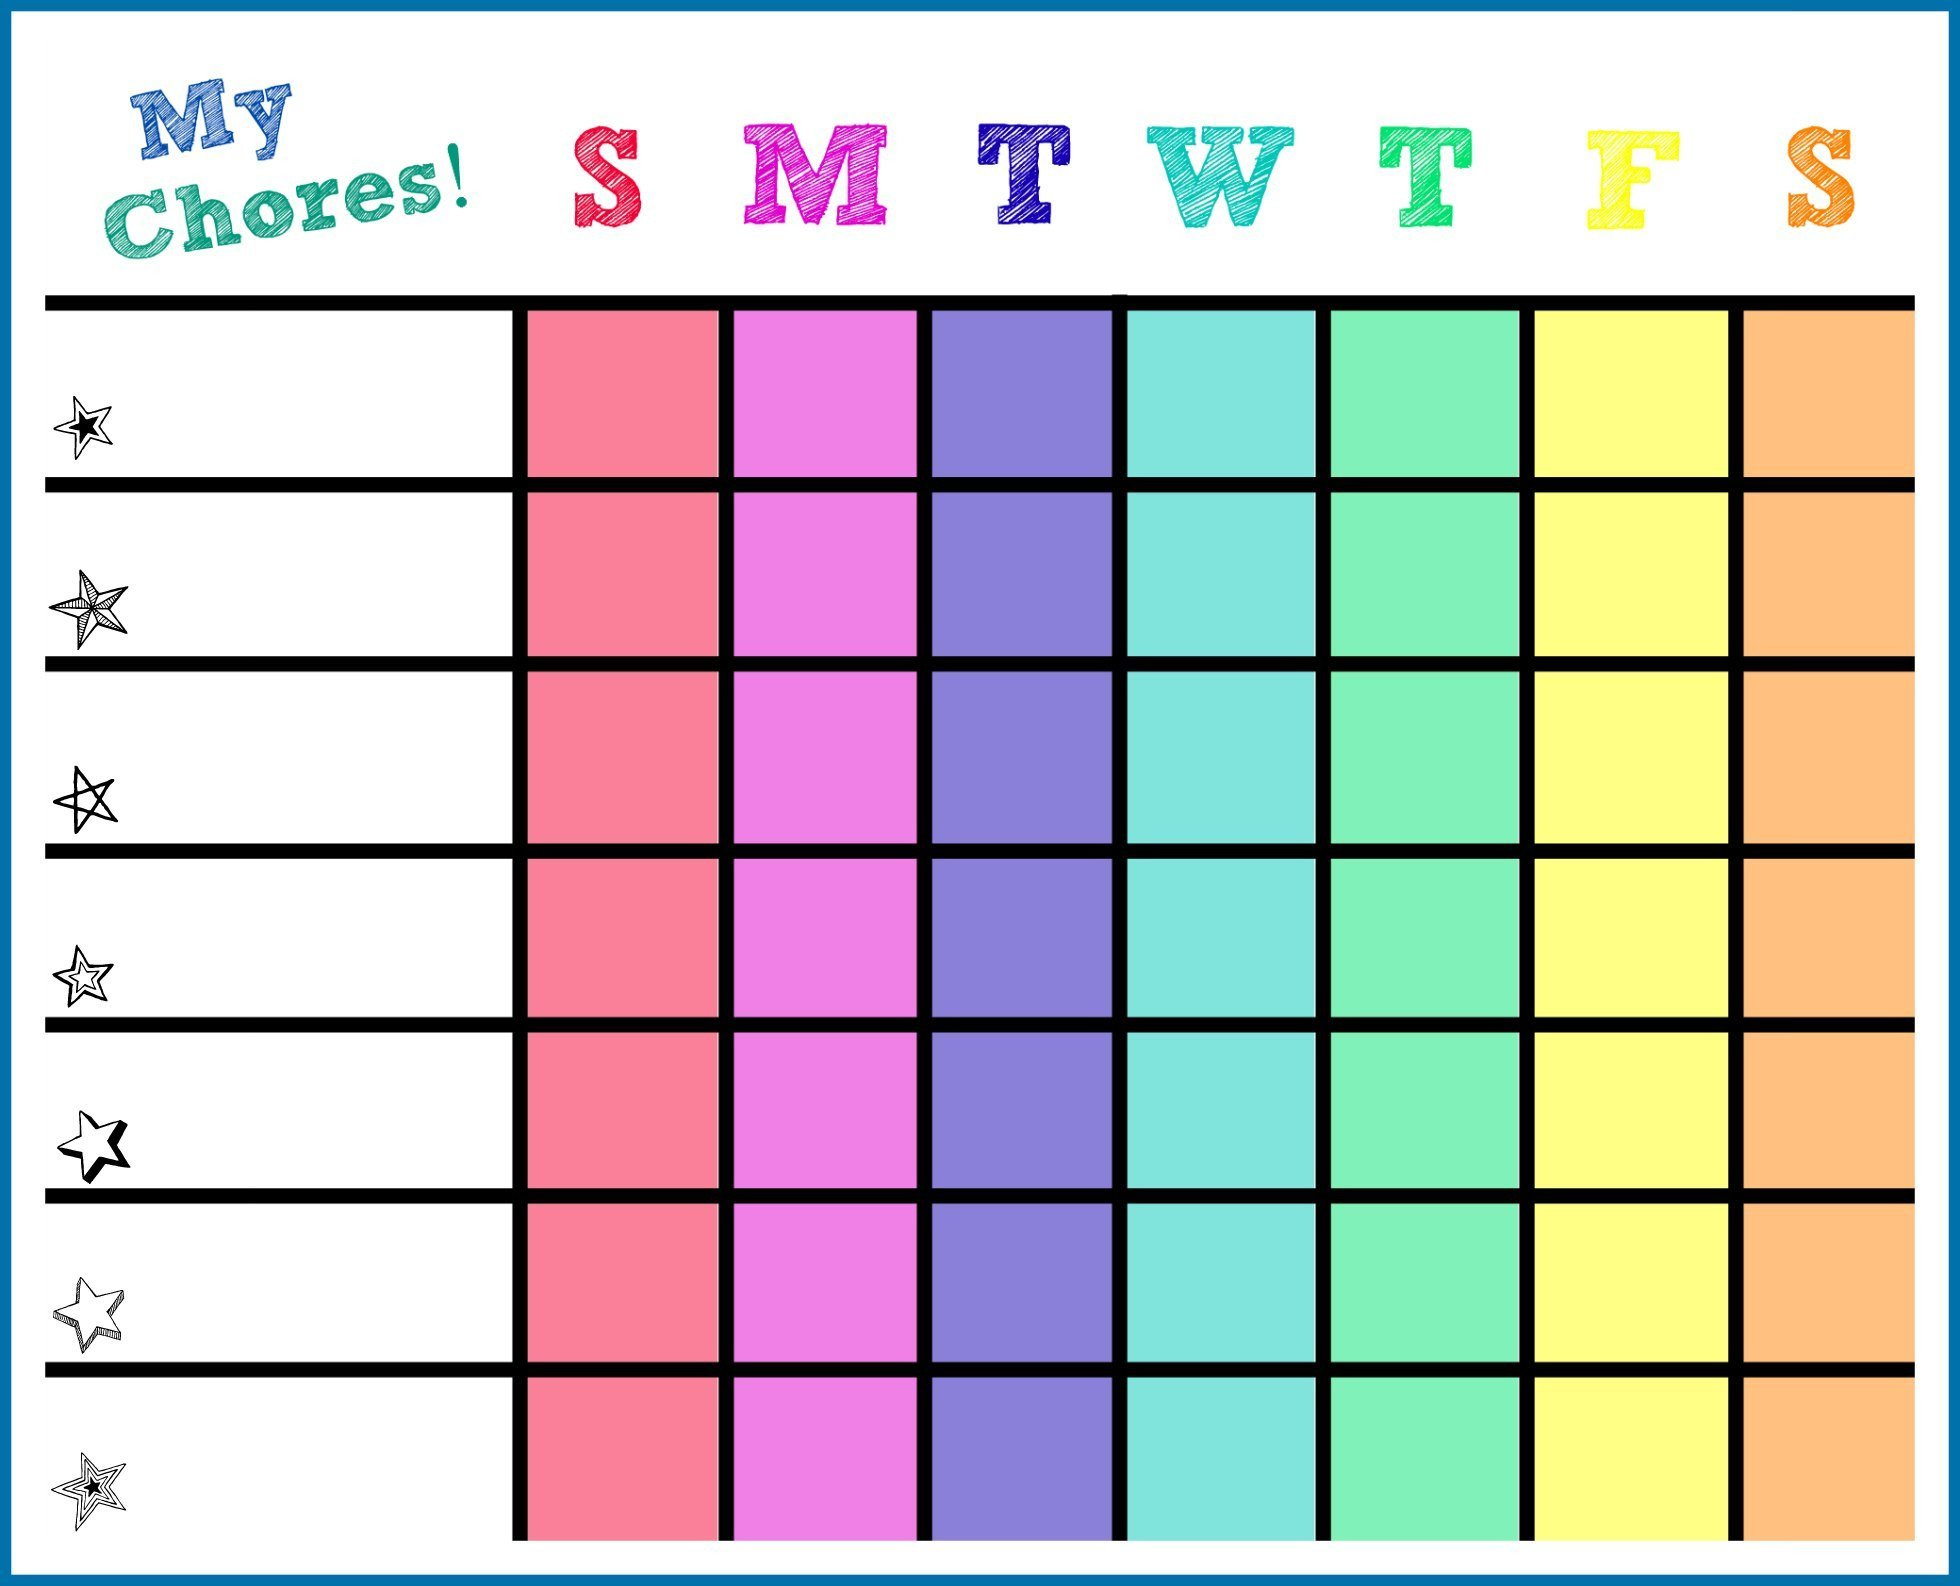 Free Printable Chore Chart Templates 5 Free Chore Chart Templates Word Excel Pdf formats